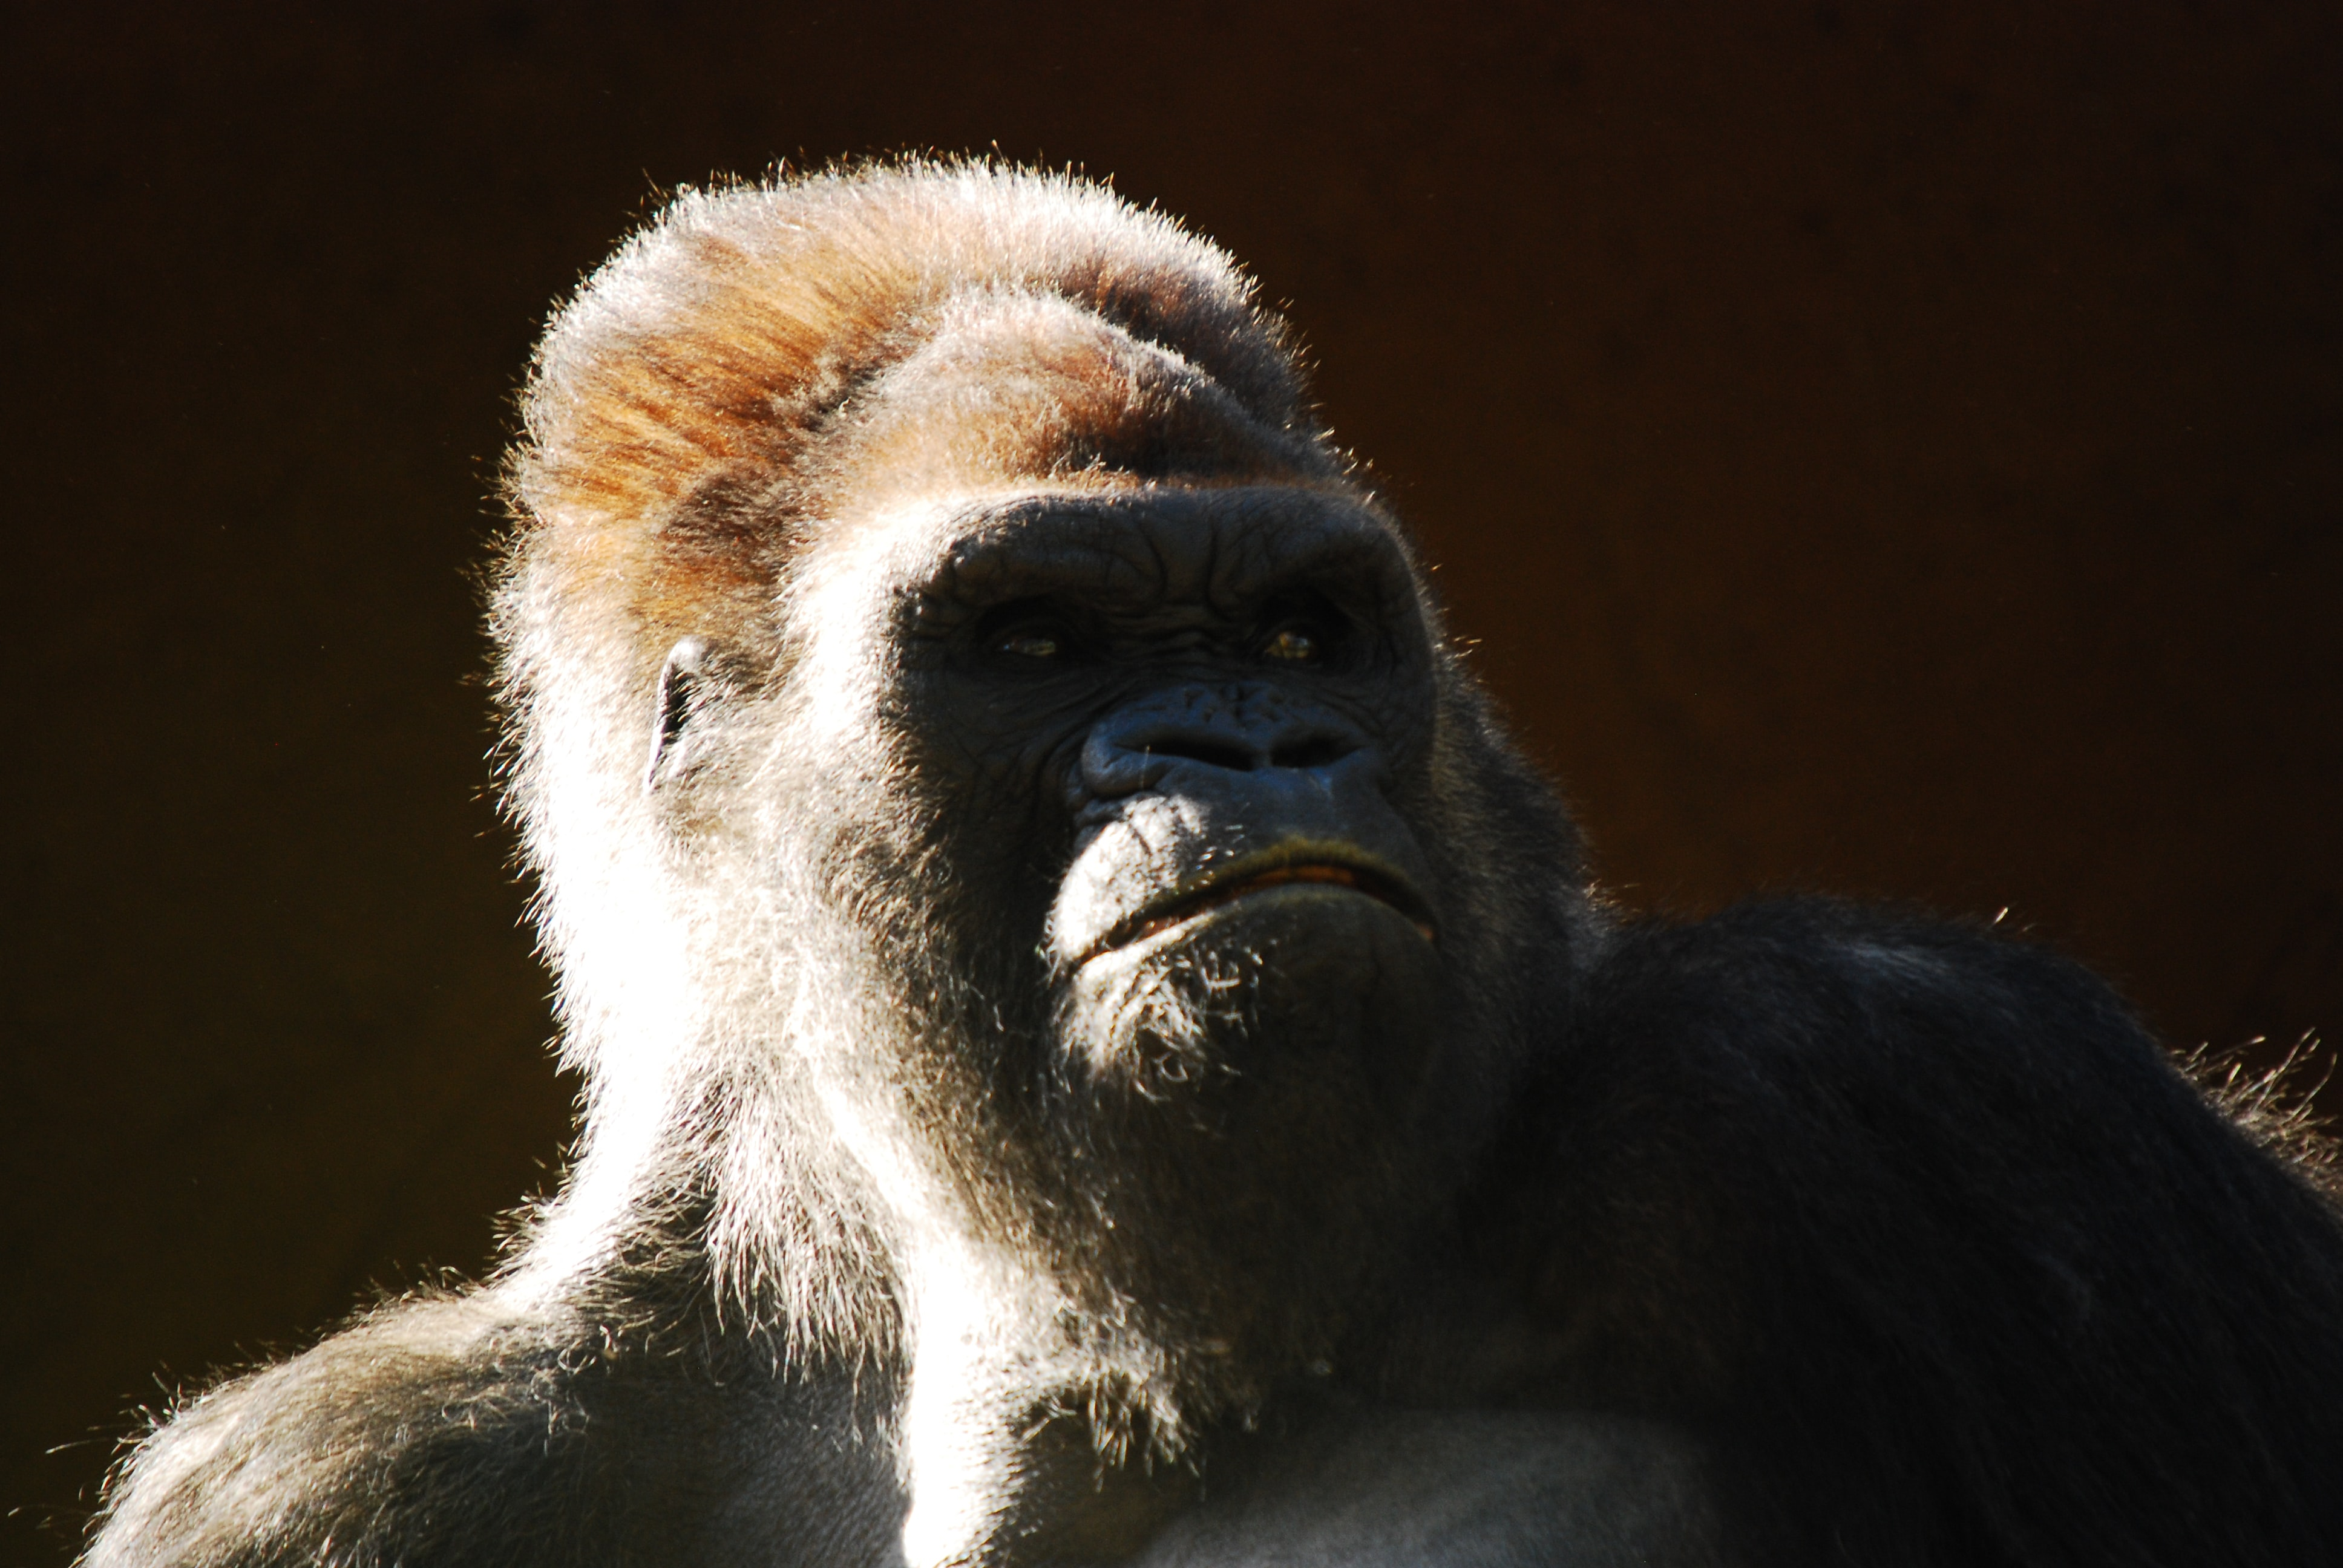 Gorilla looking upward with a shadow over its face